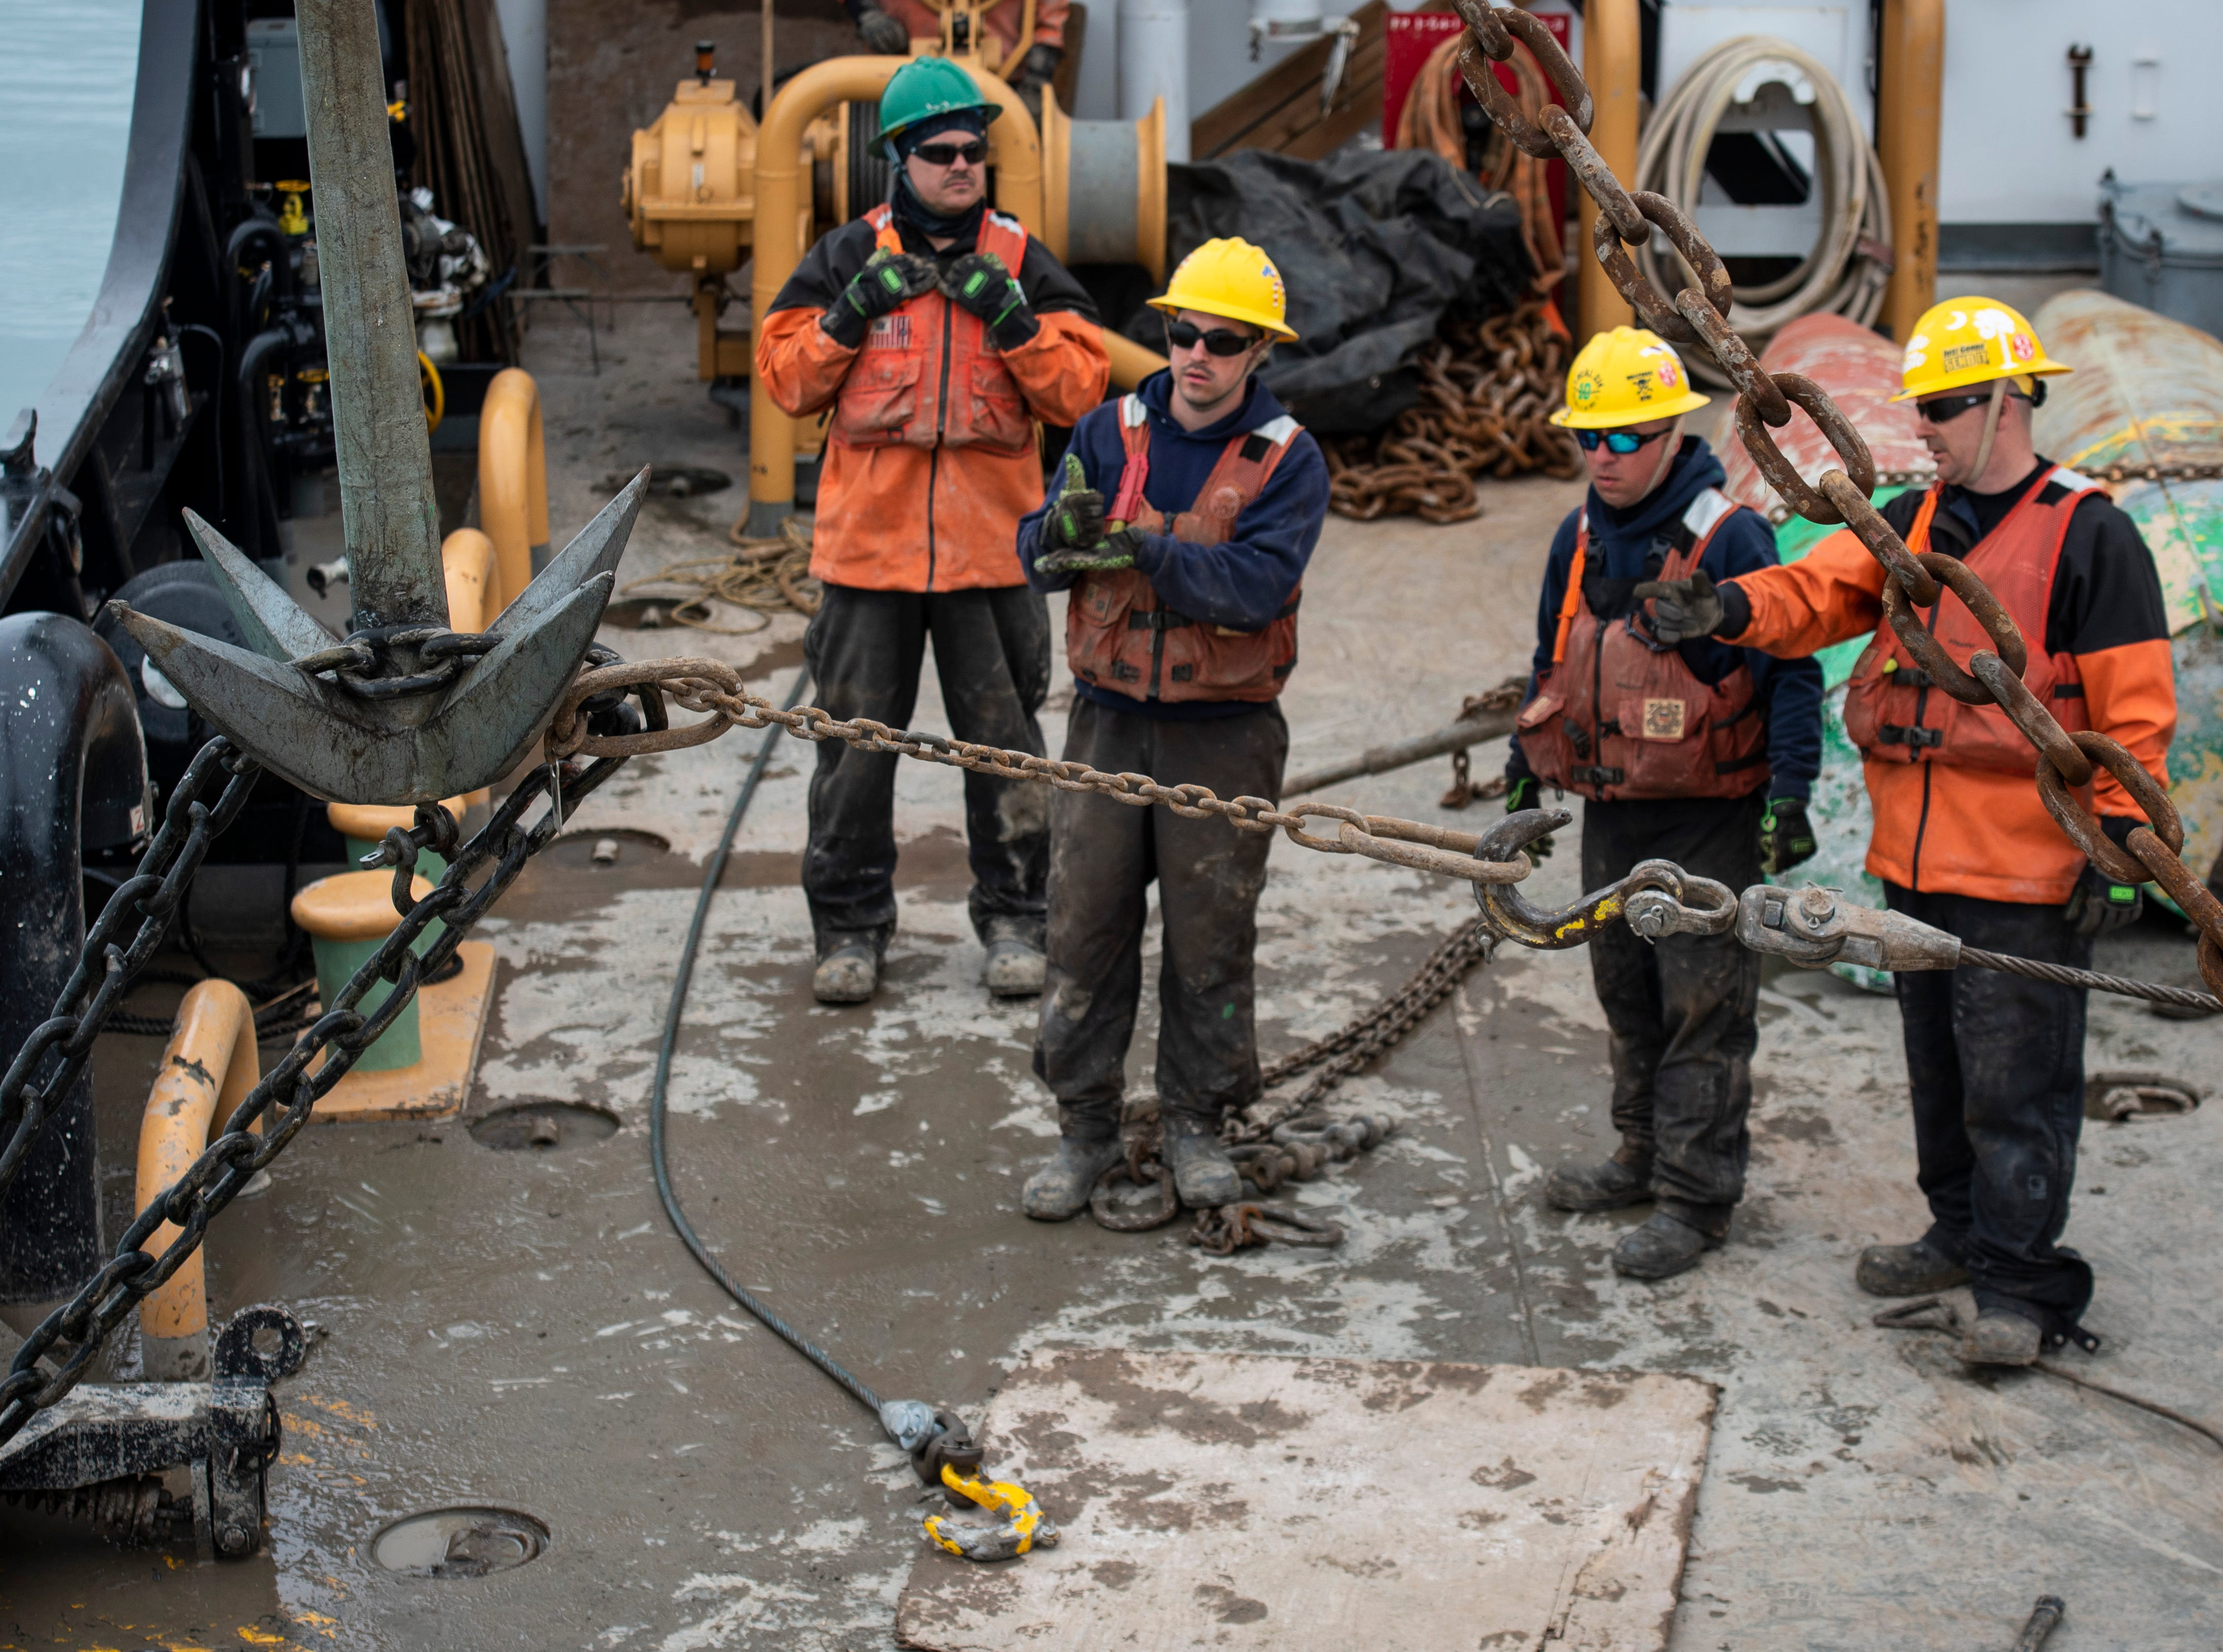 A second line is added to help pull the sunken buoy's chain onto the Hollyhock's deck. Once the chain is secured, it will be cut so the sunken buoy and its stone can be brought up individually.